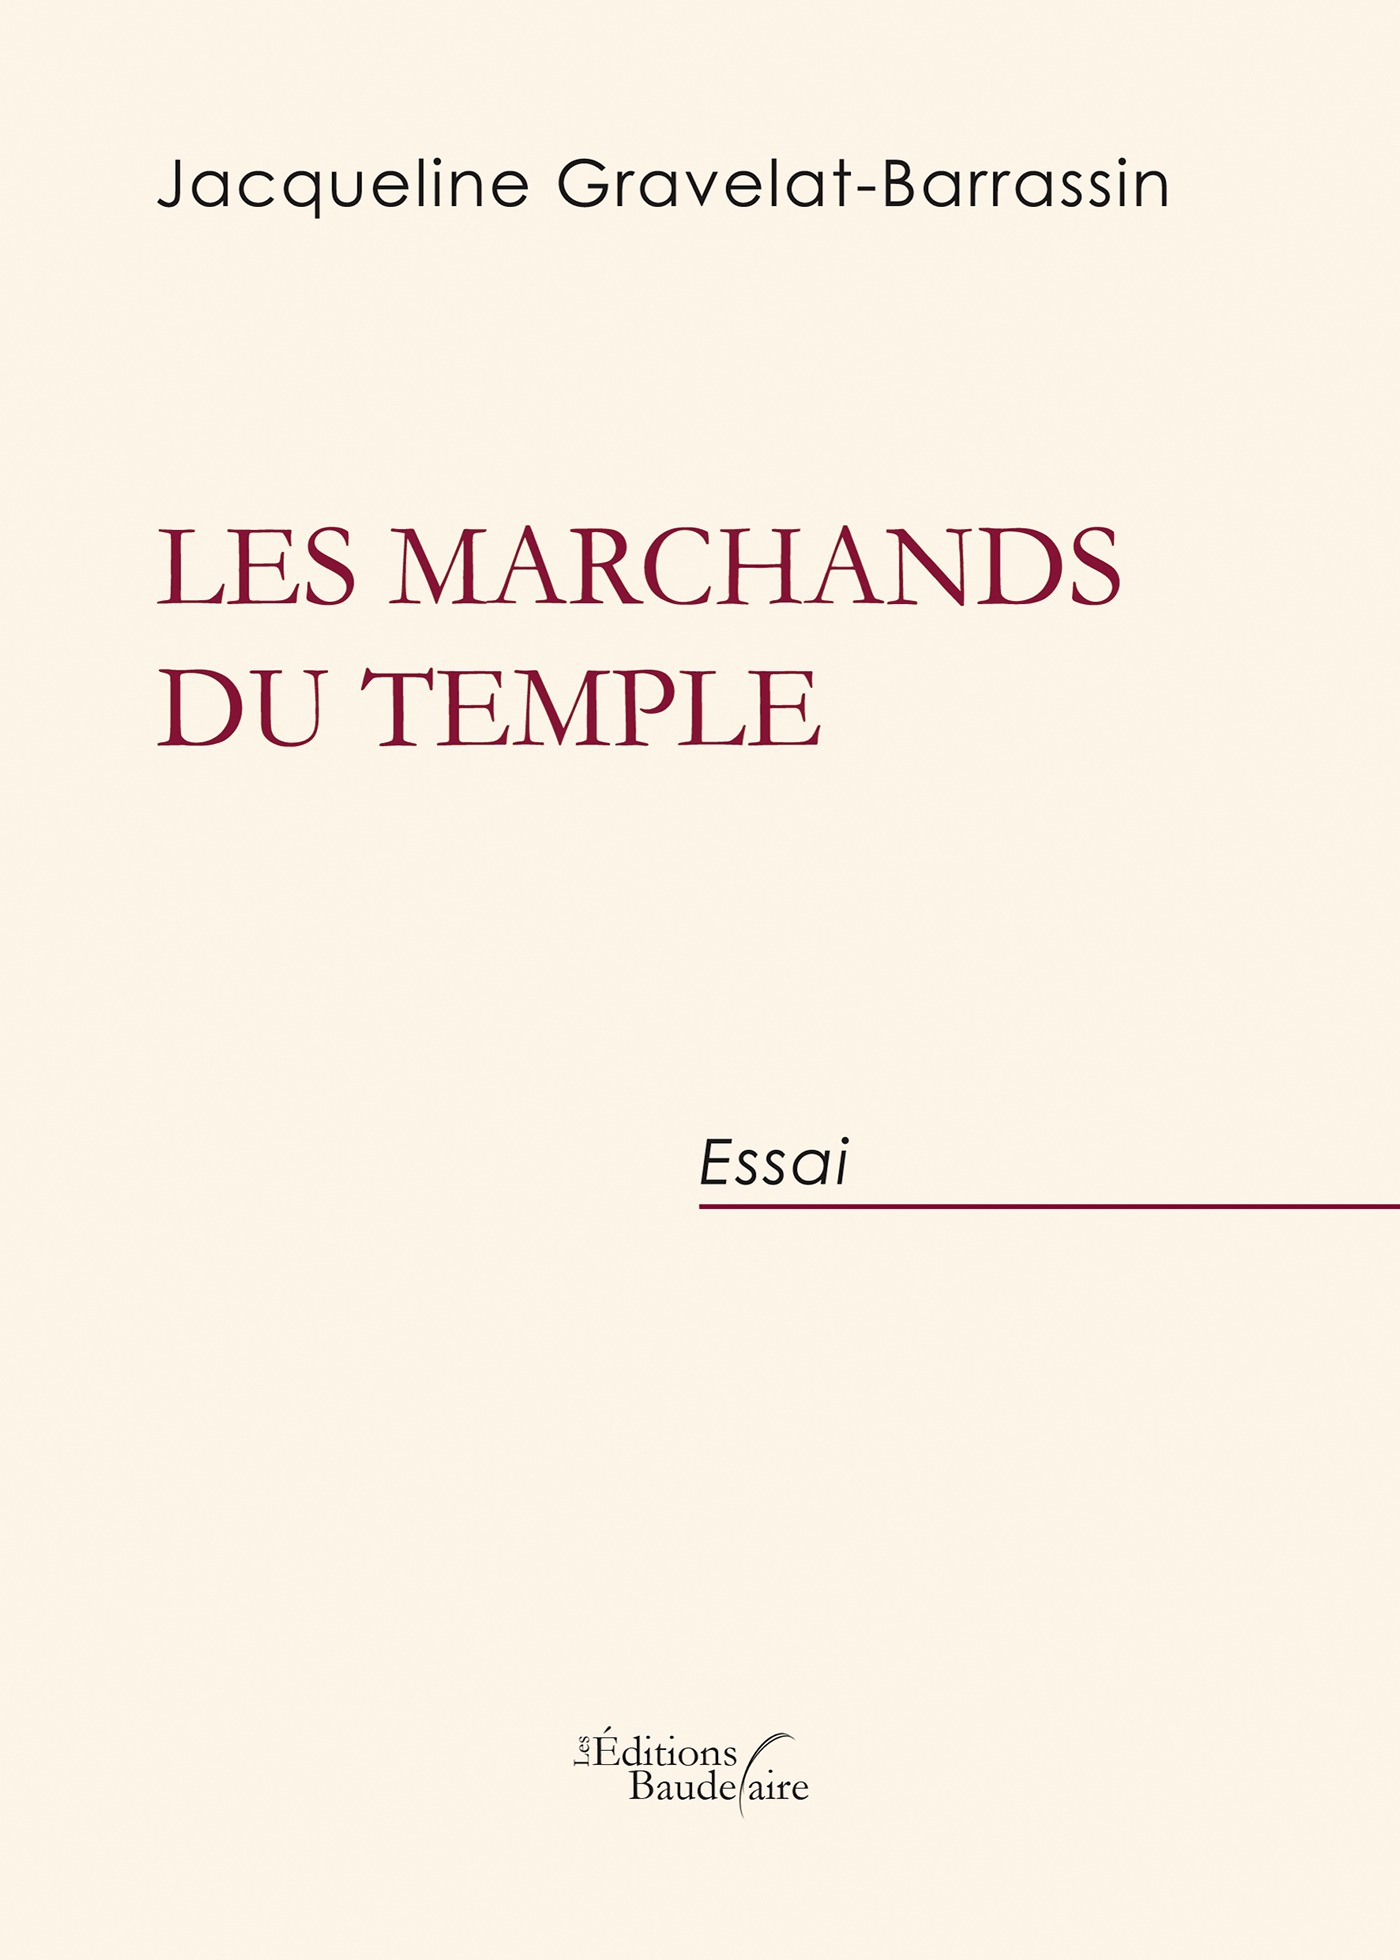 Les marchands du temple